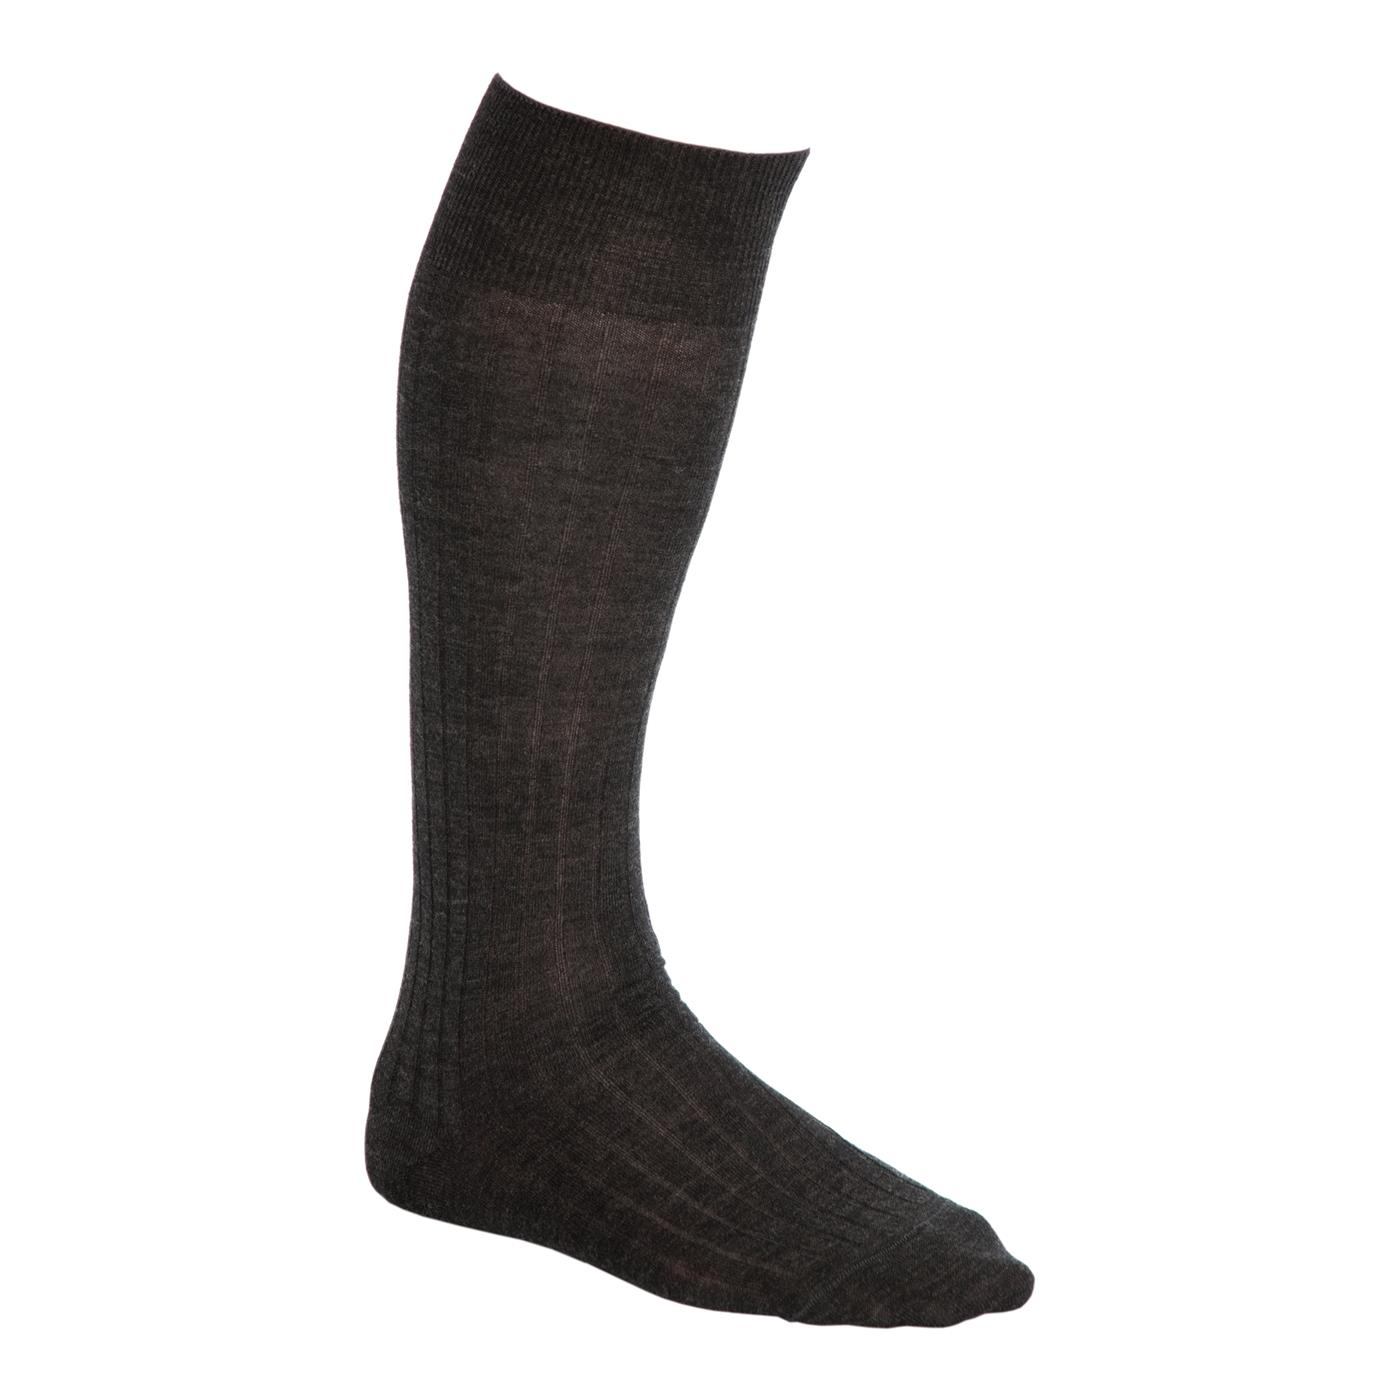 Virgin wool knee socks